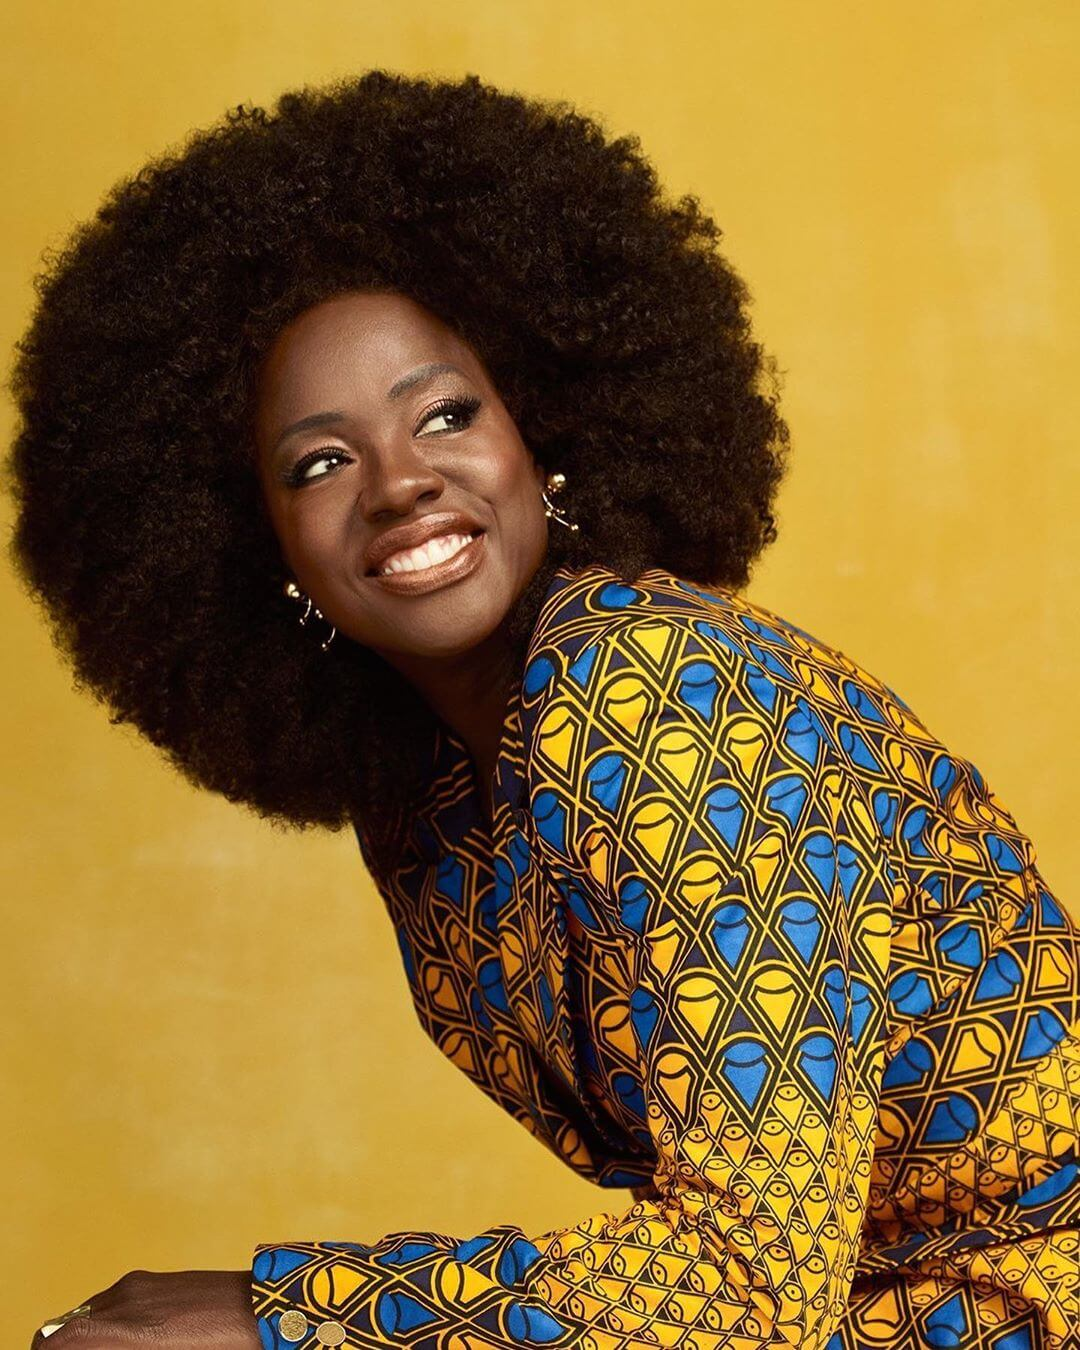 Viola Davis is set to play a general in the ancient African kingdom of Dahomey